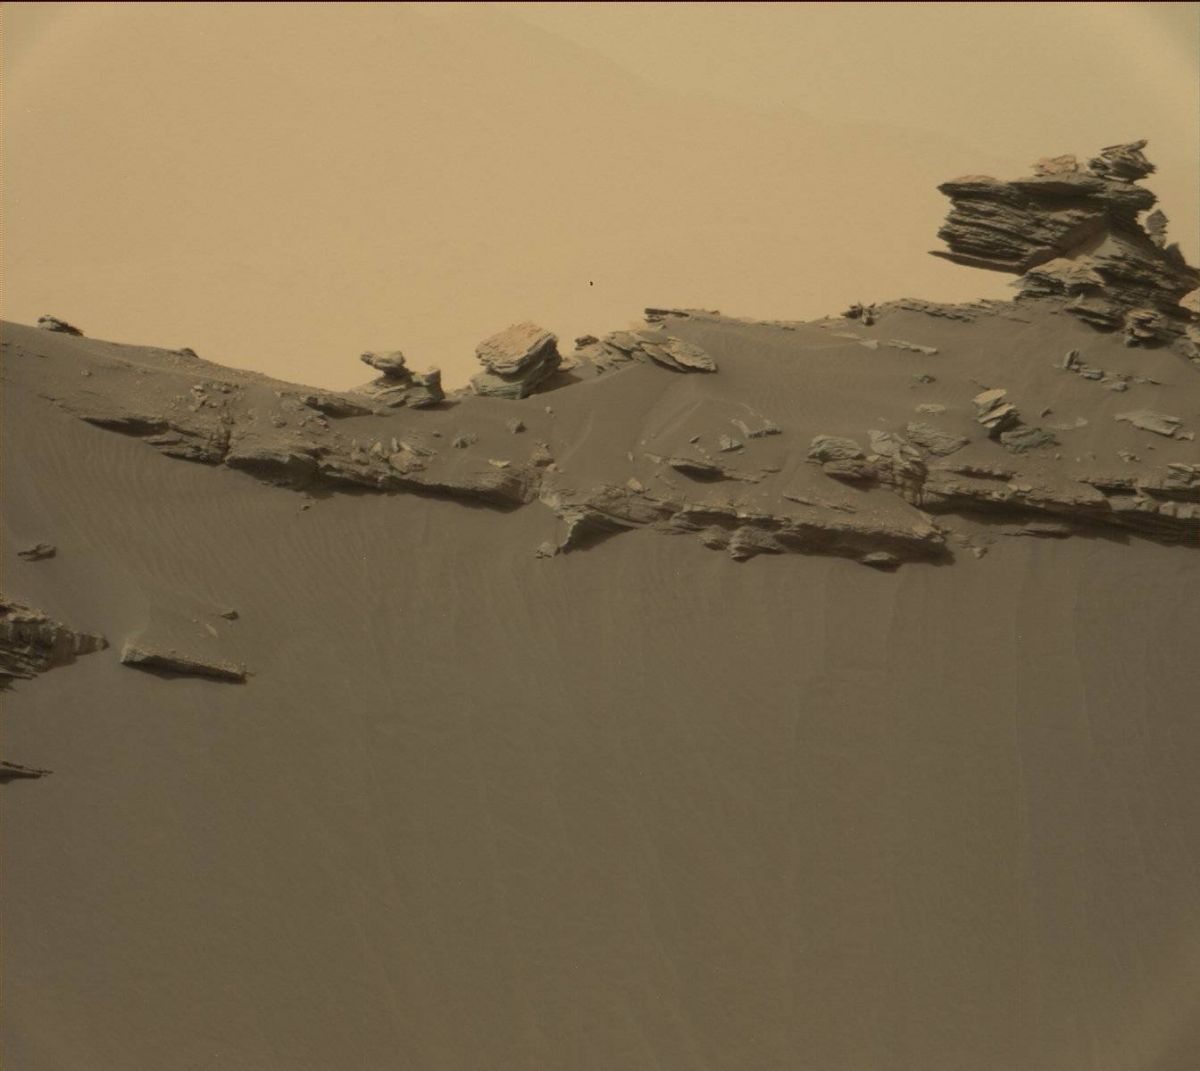 Curiosity Mars Rover: On the Prowl for Next Possible Drill ...